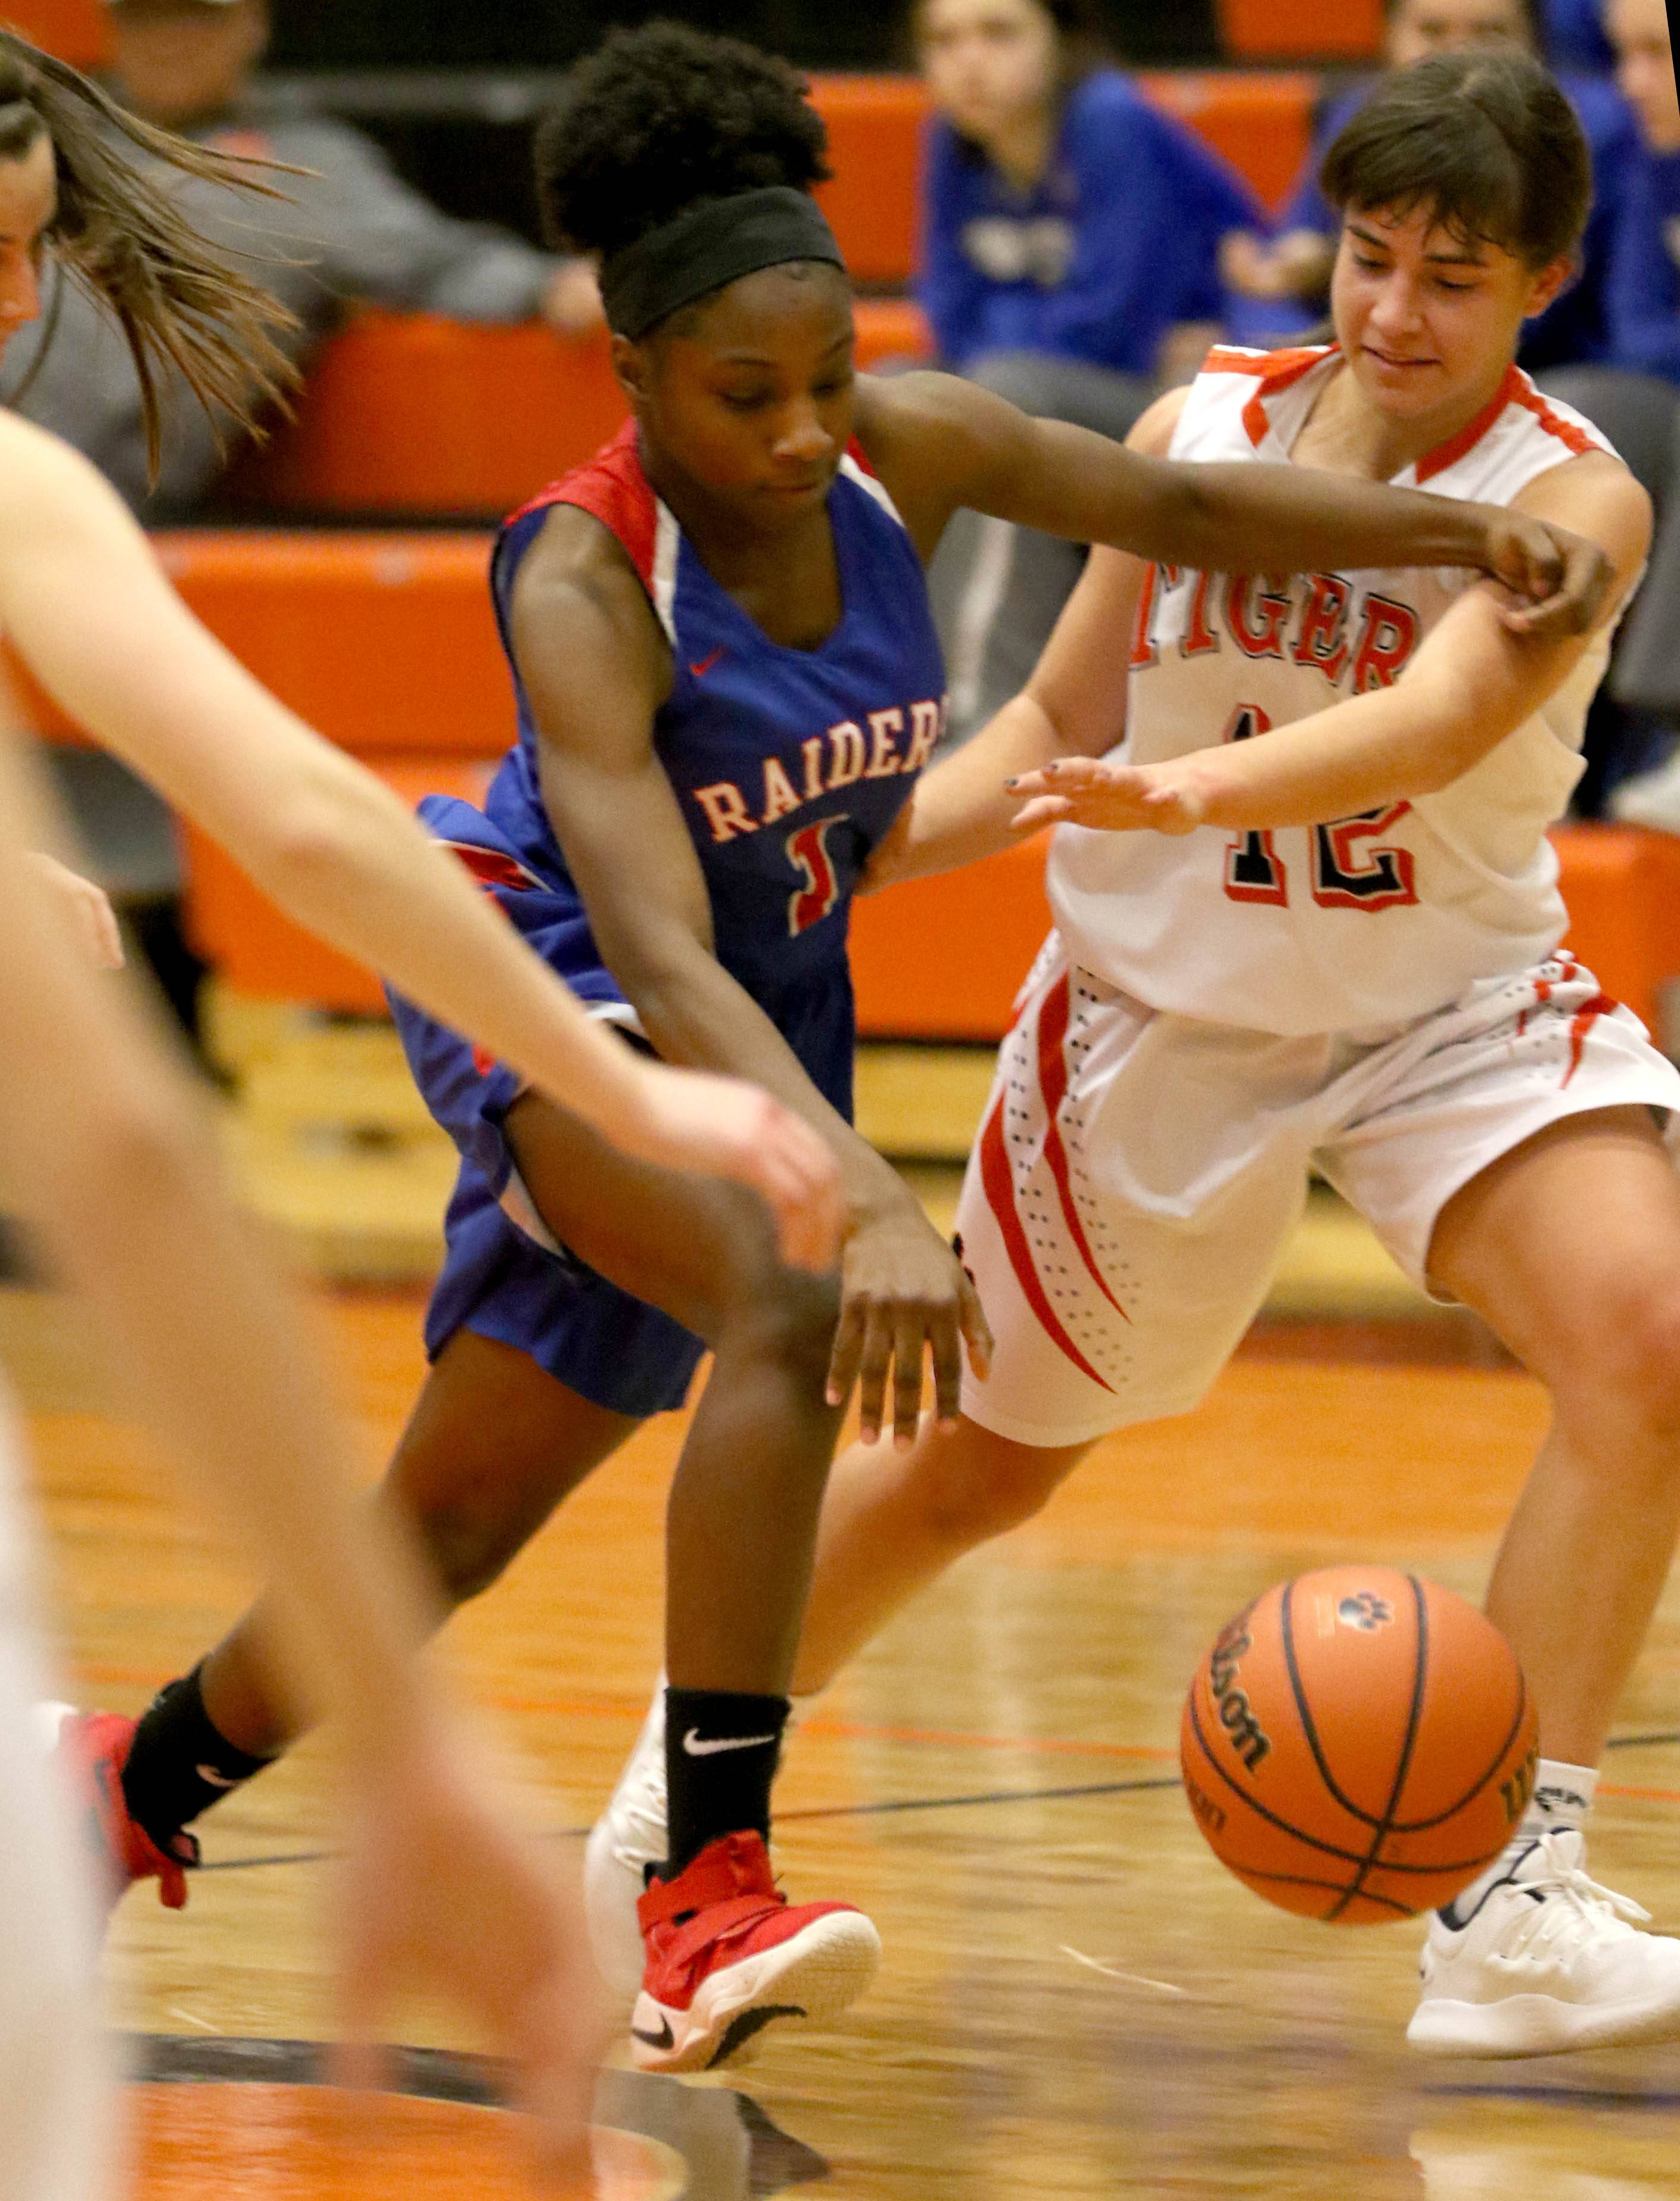 Glenbard South's India Lucas, center, slips past Wheaton Warrenville South's Mira Emma during varsity girls basketball at Wheaton Warrenville South High School Wednesday evening.